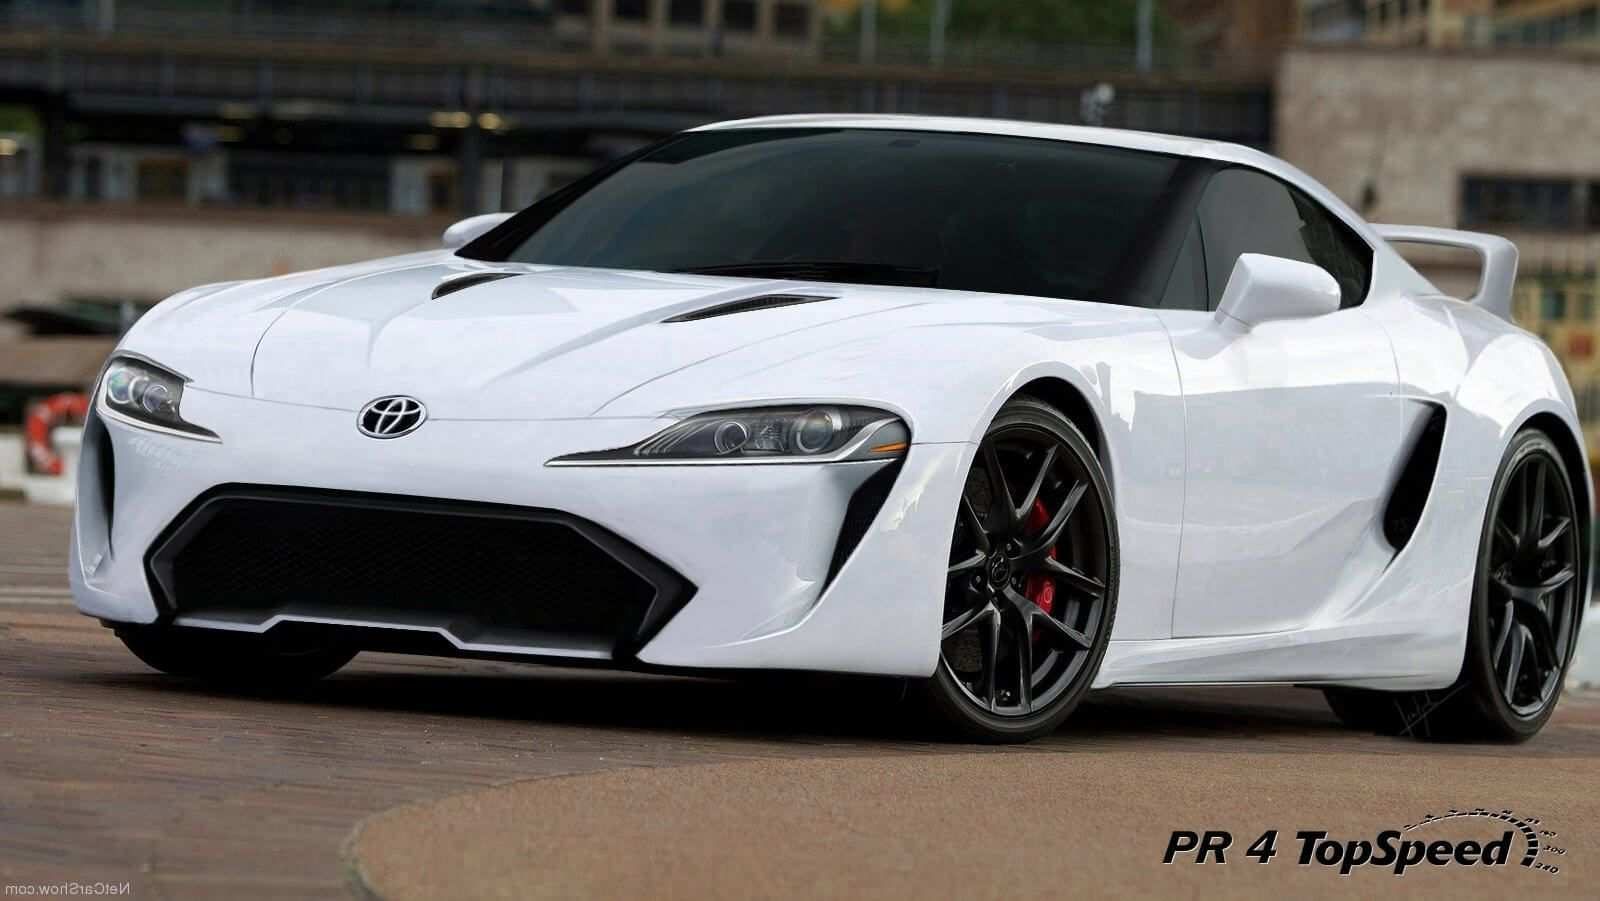 63 Best Review Toyota Gt86 2020 Release Date for Toyota Gt86 2020